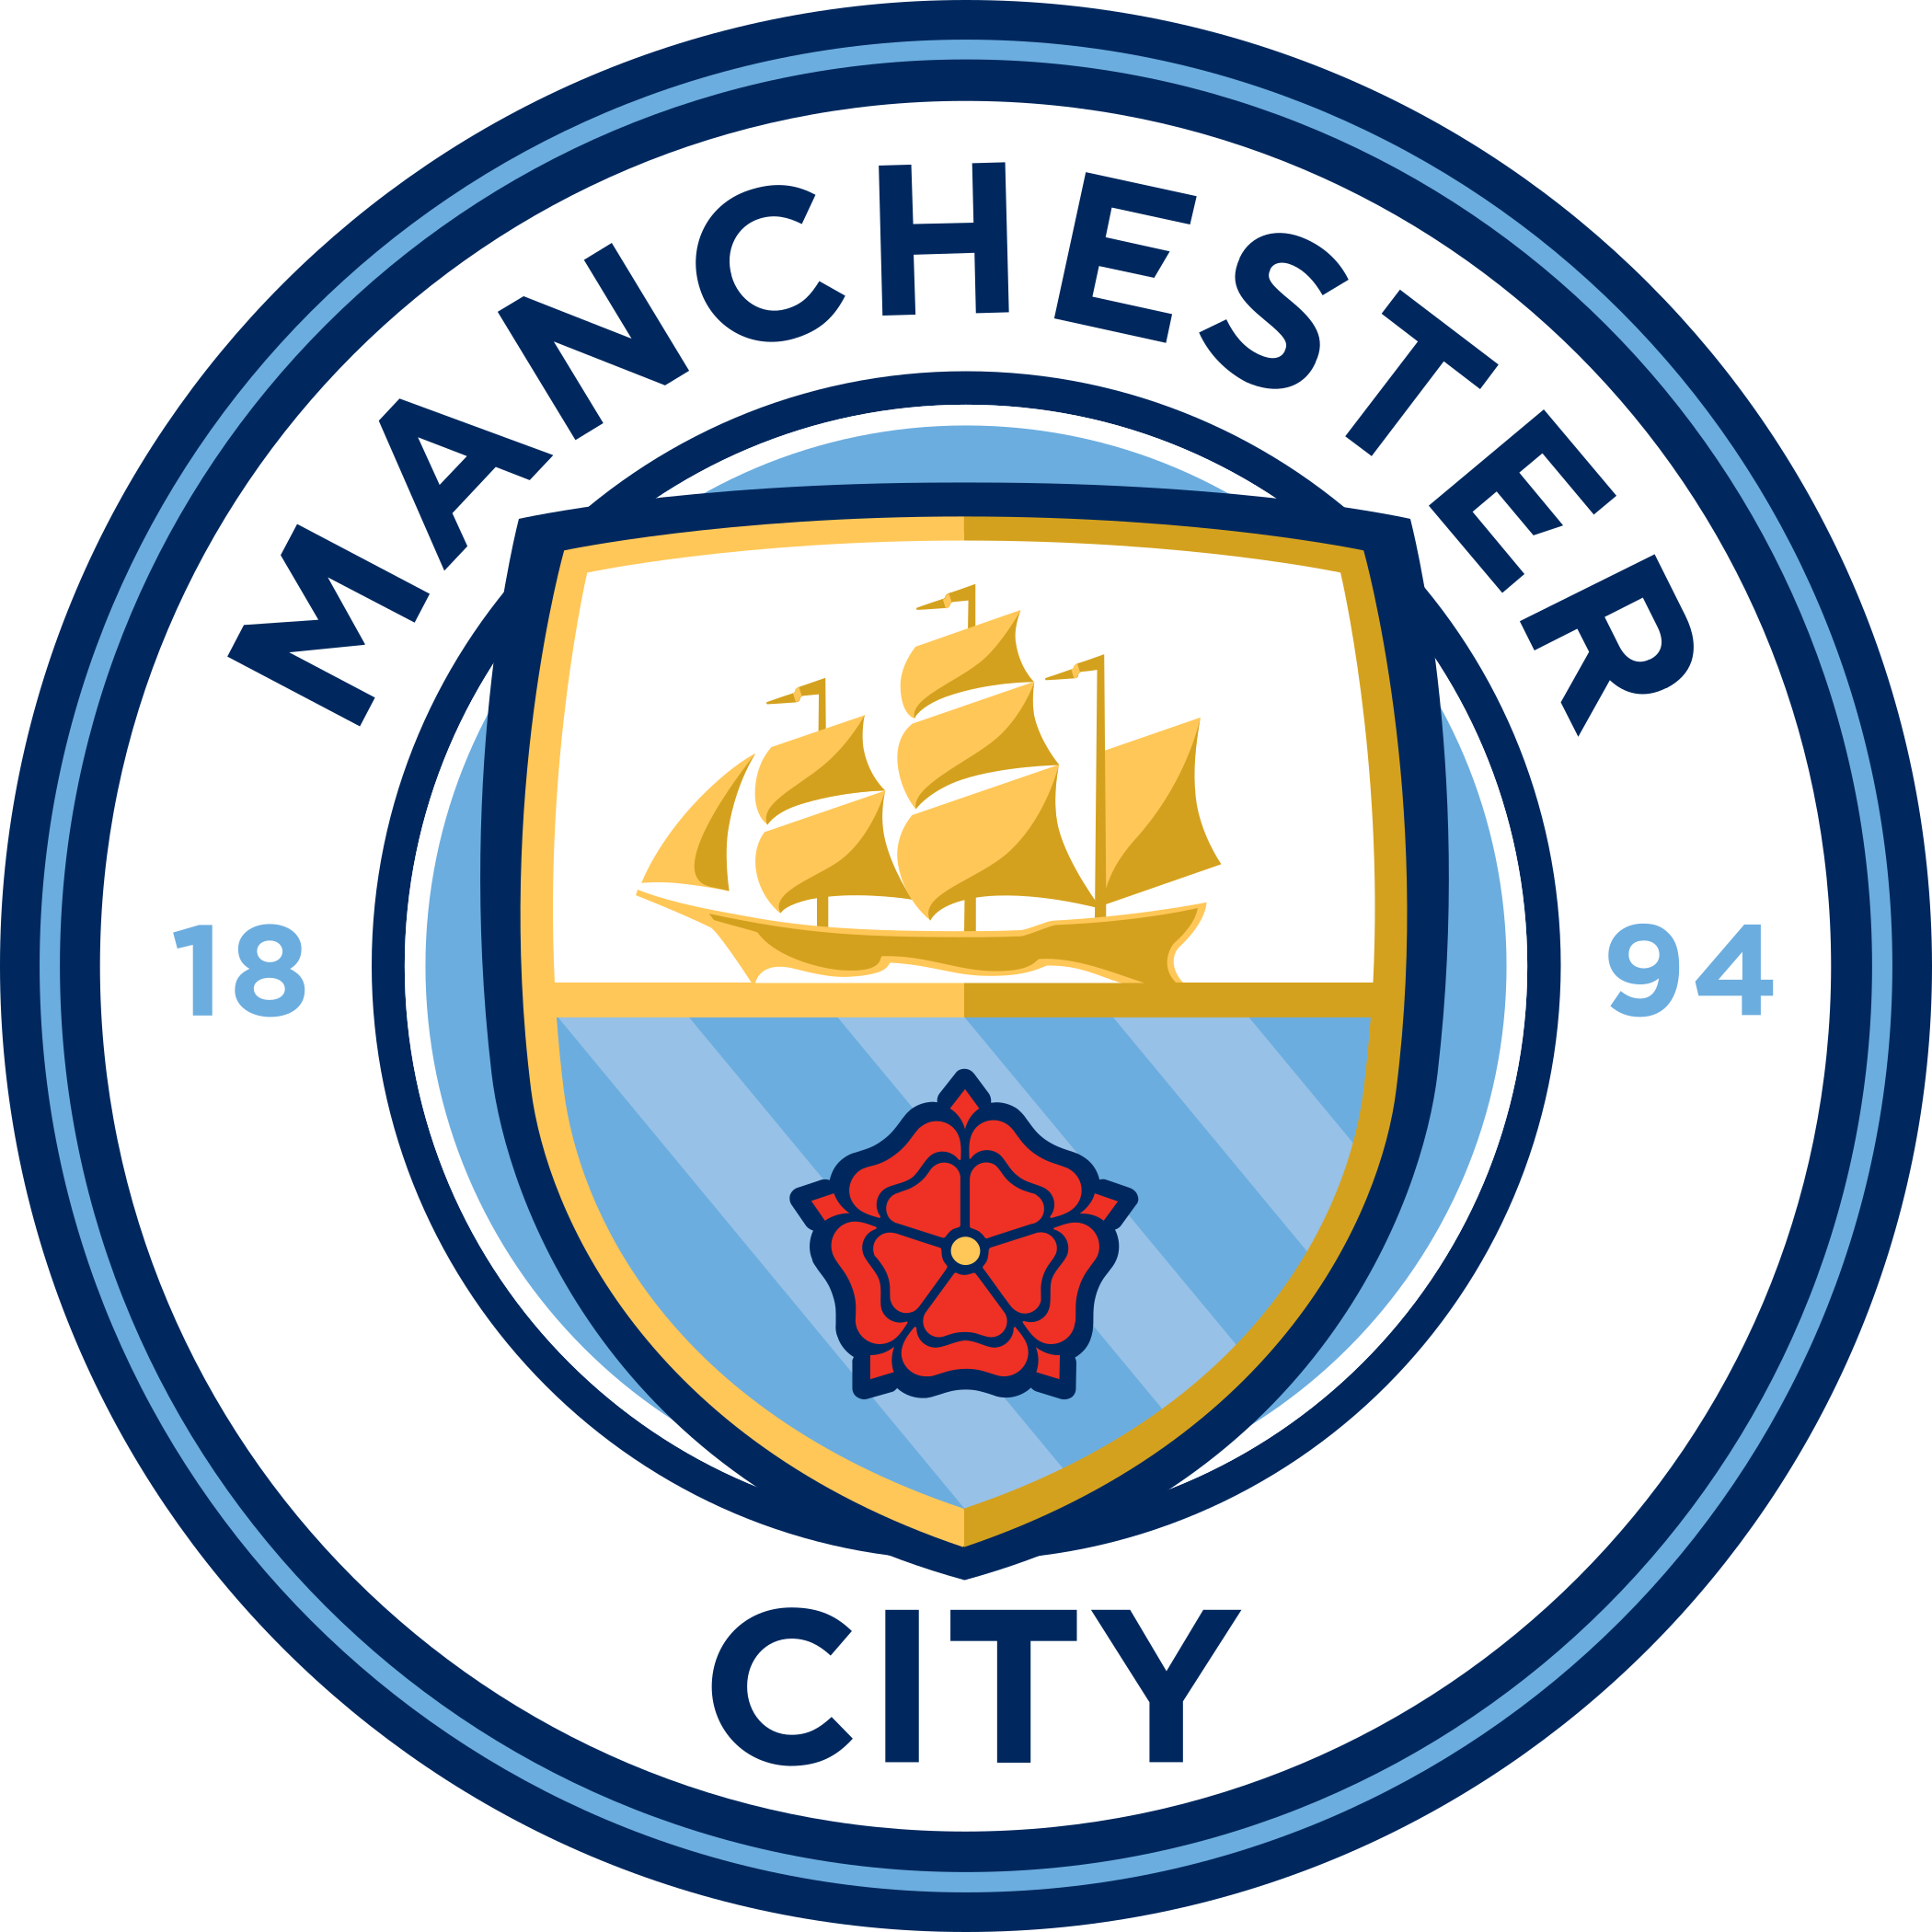 manchester city fc logo escudo badge 1 - Manchester City Logo - Manchester City Football Club Escudo